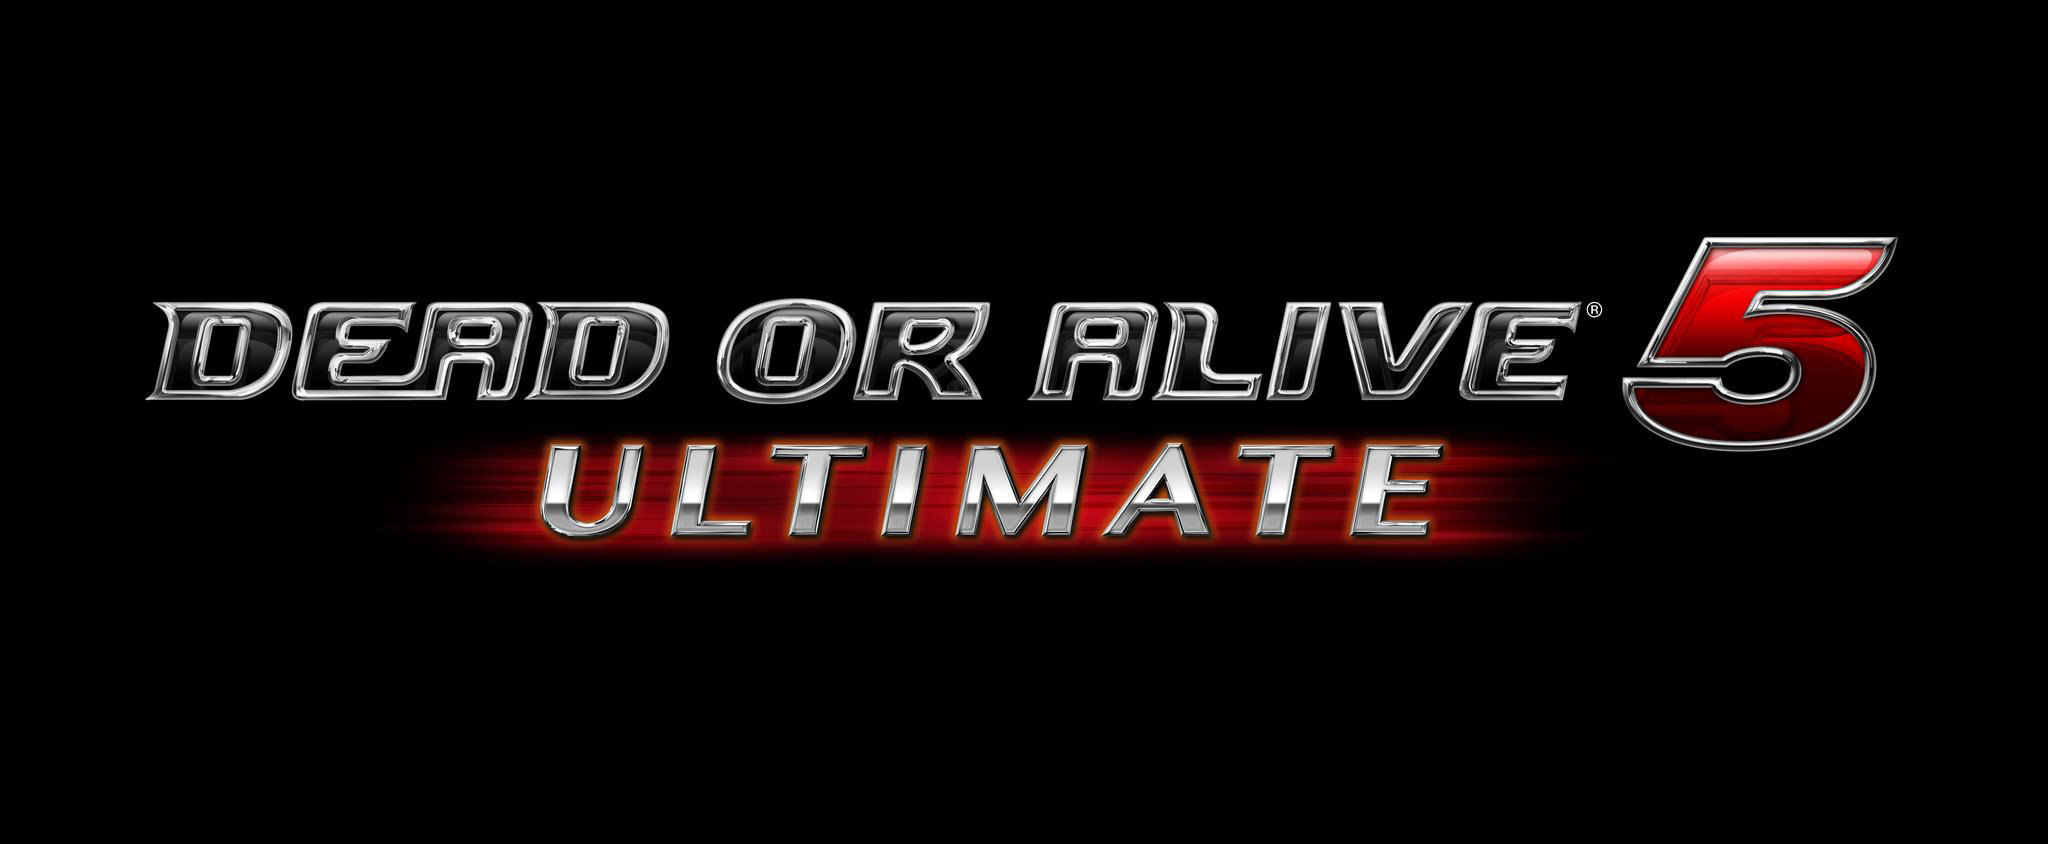 List of Dead or Alive 5 Ultimate characters